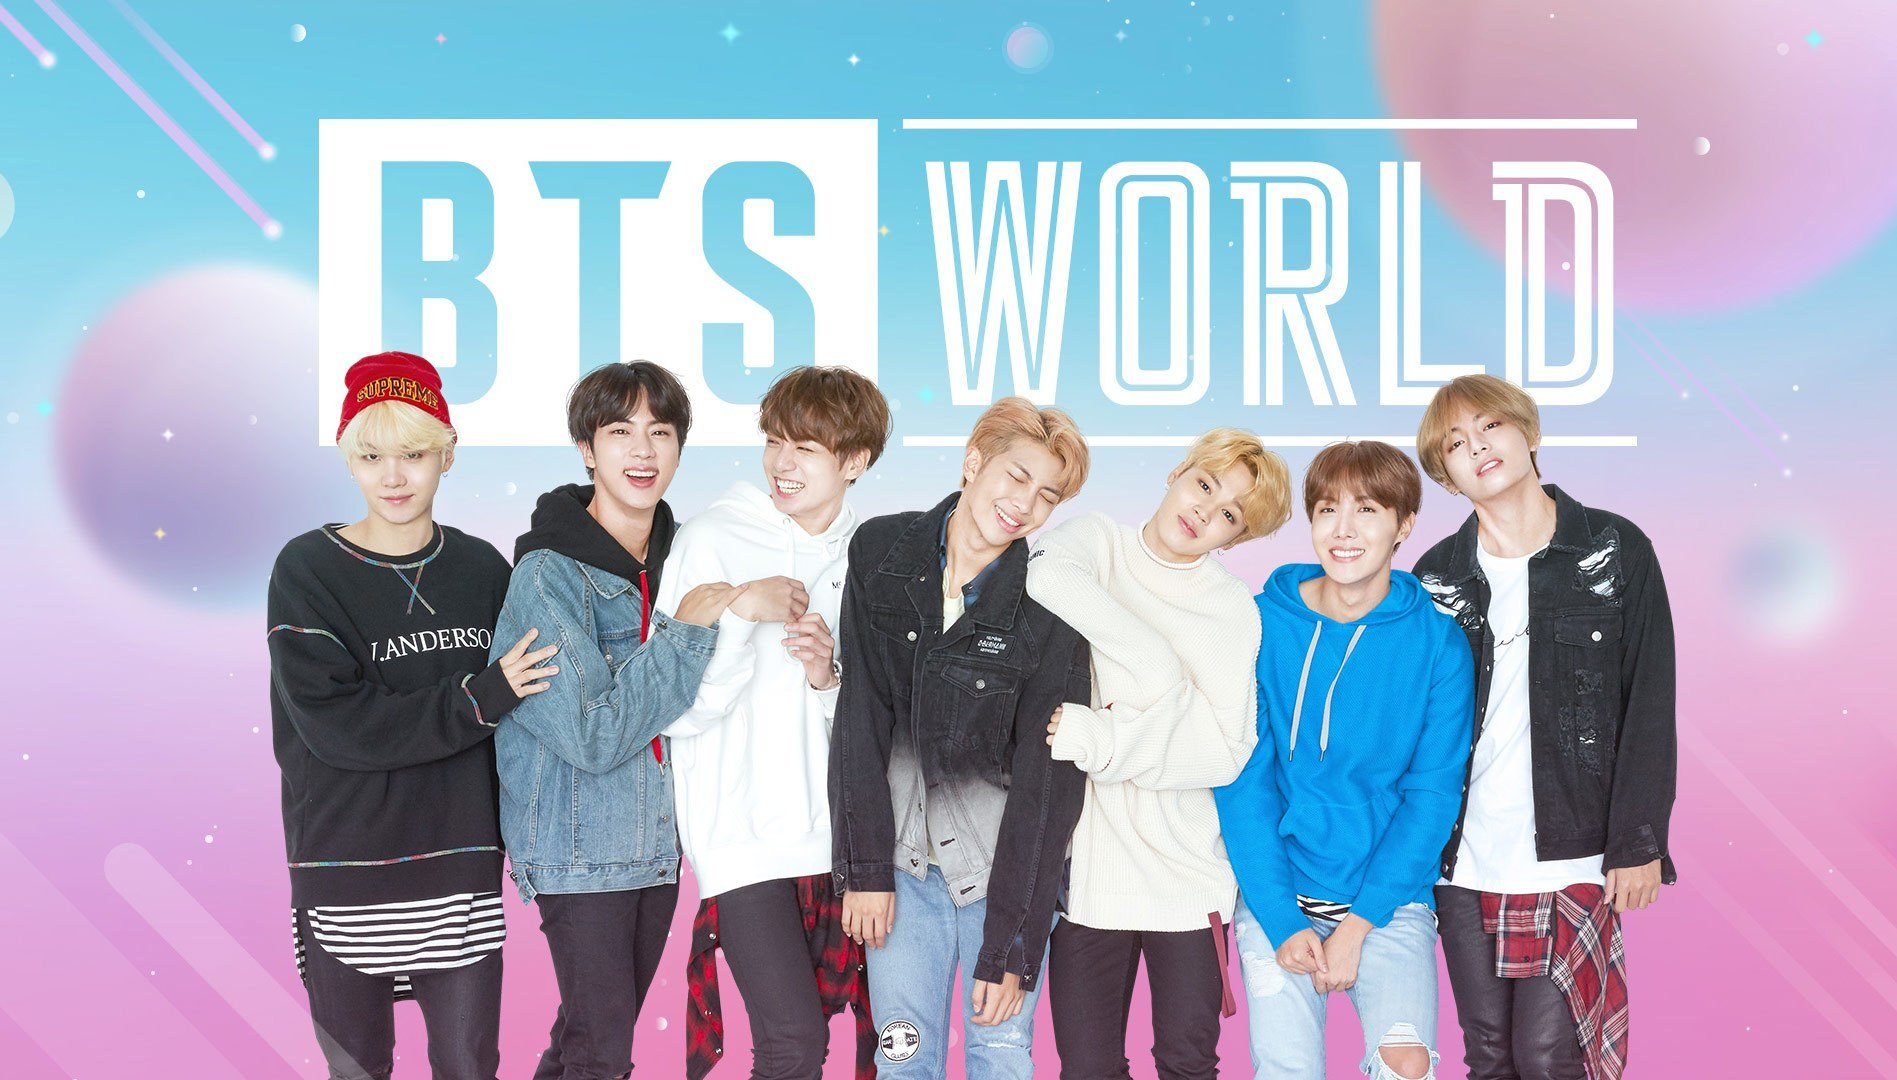 To increase your Affinity Levels, you'll need to trigger Mobile Events in BTS World and select the best responses to win over each member.